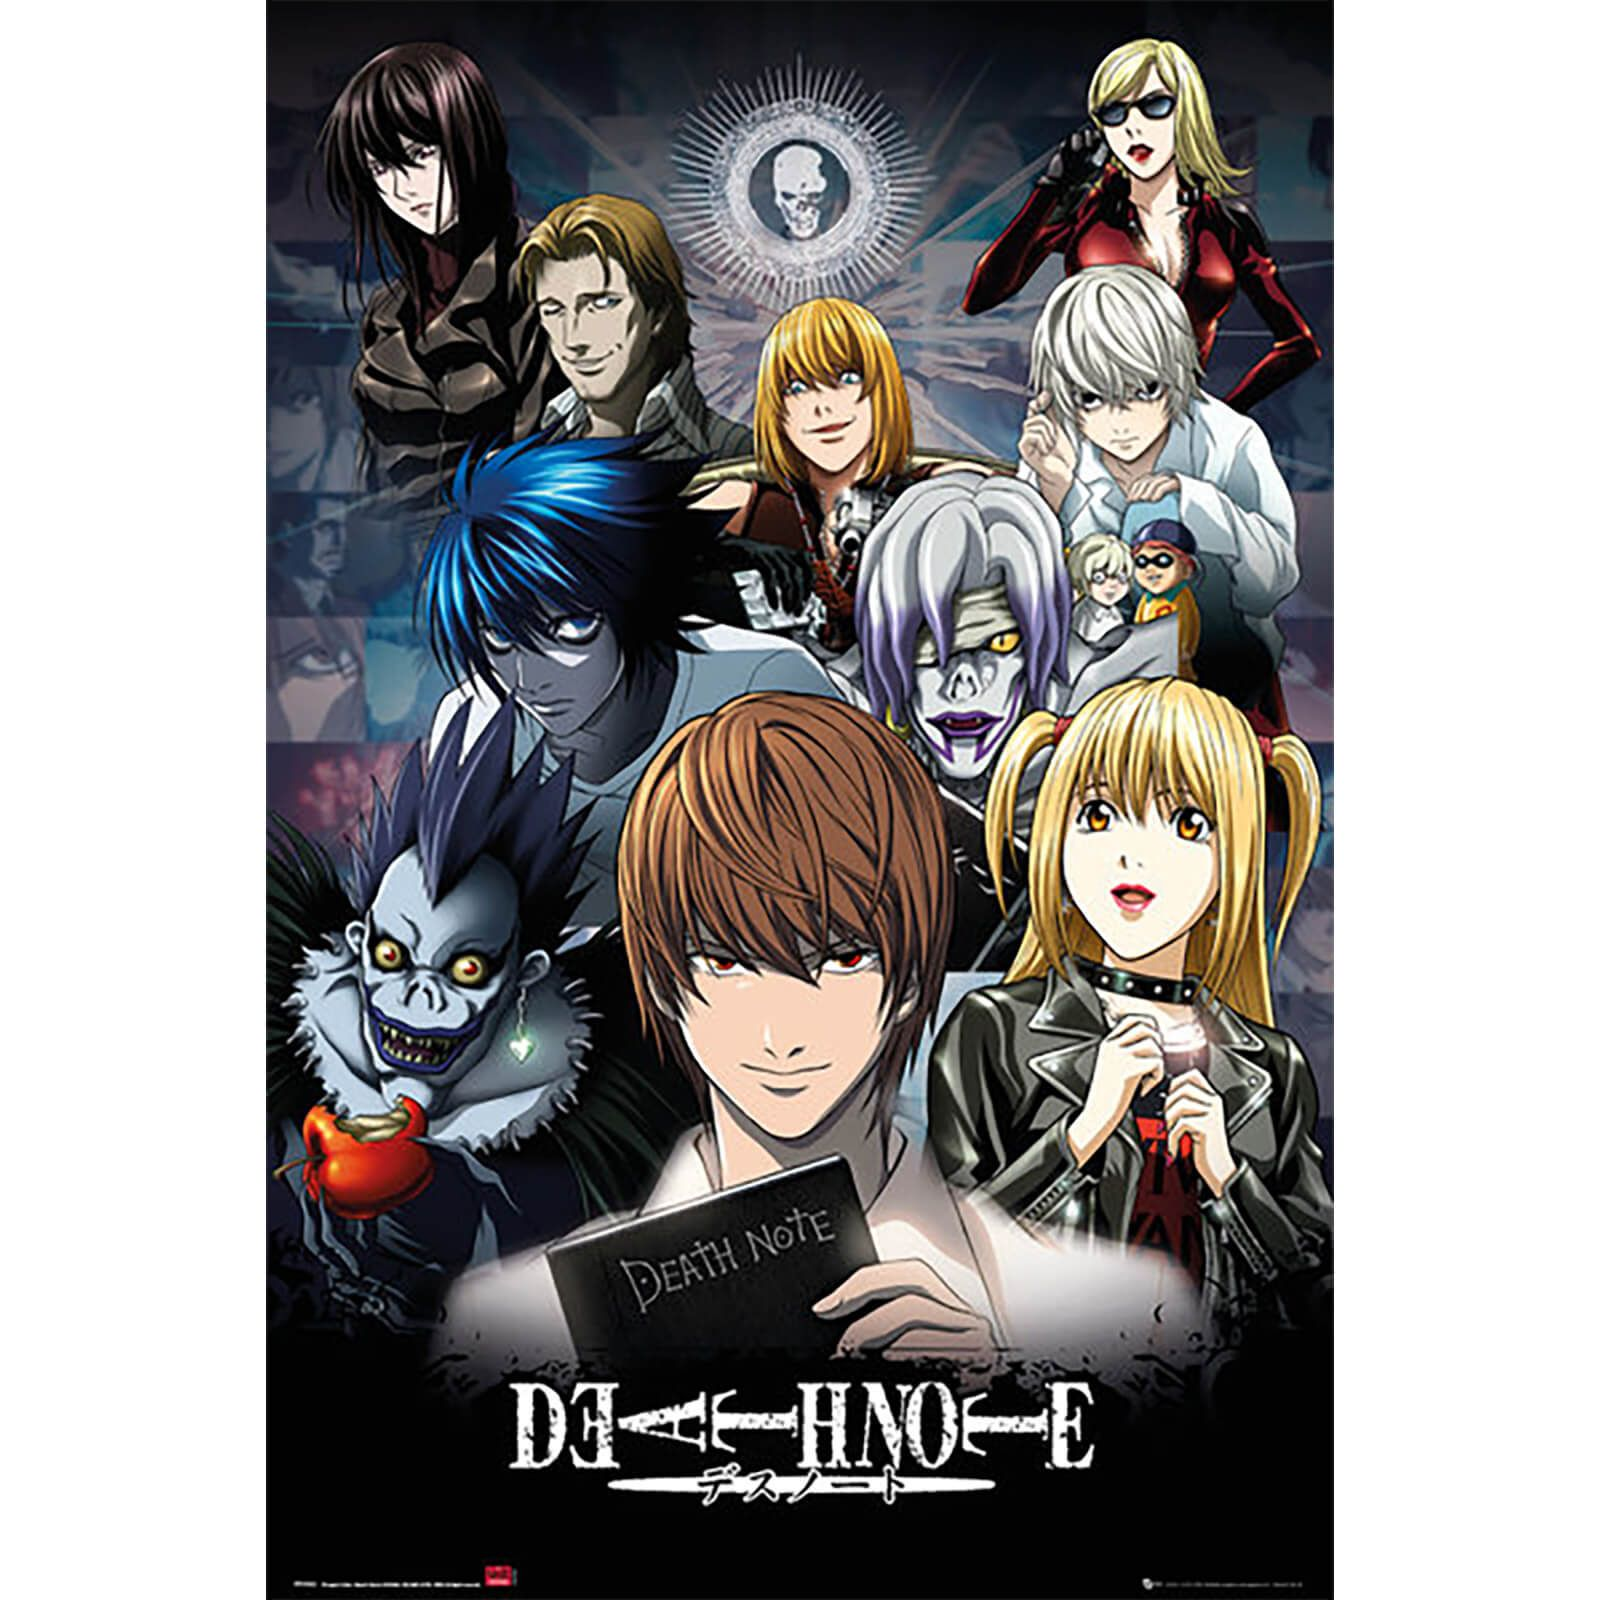 Deathnote collage 24 x 36 inches maxi poster anime